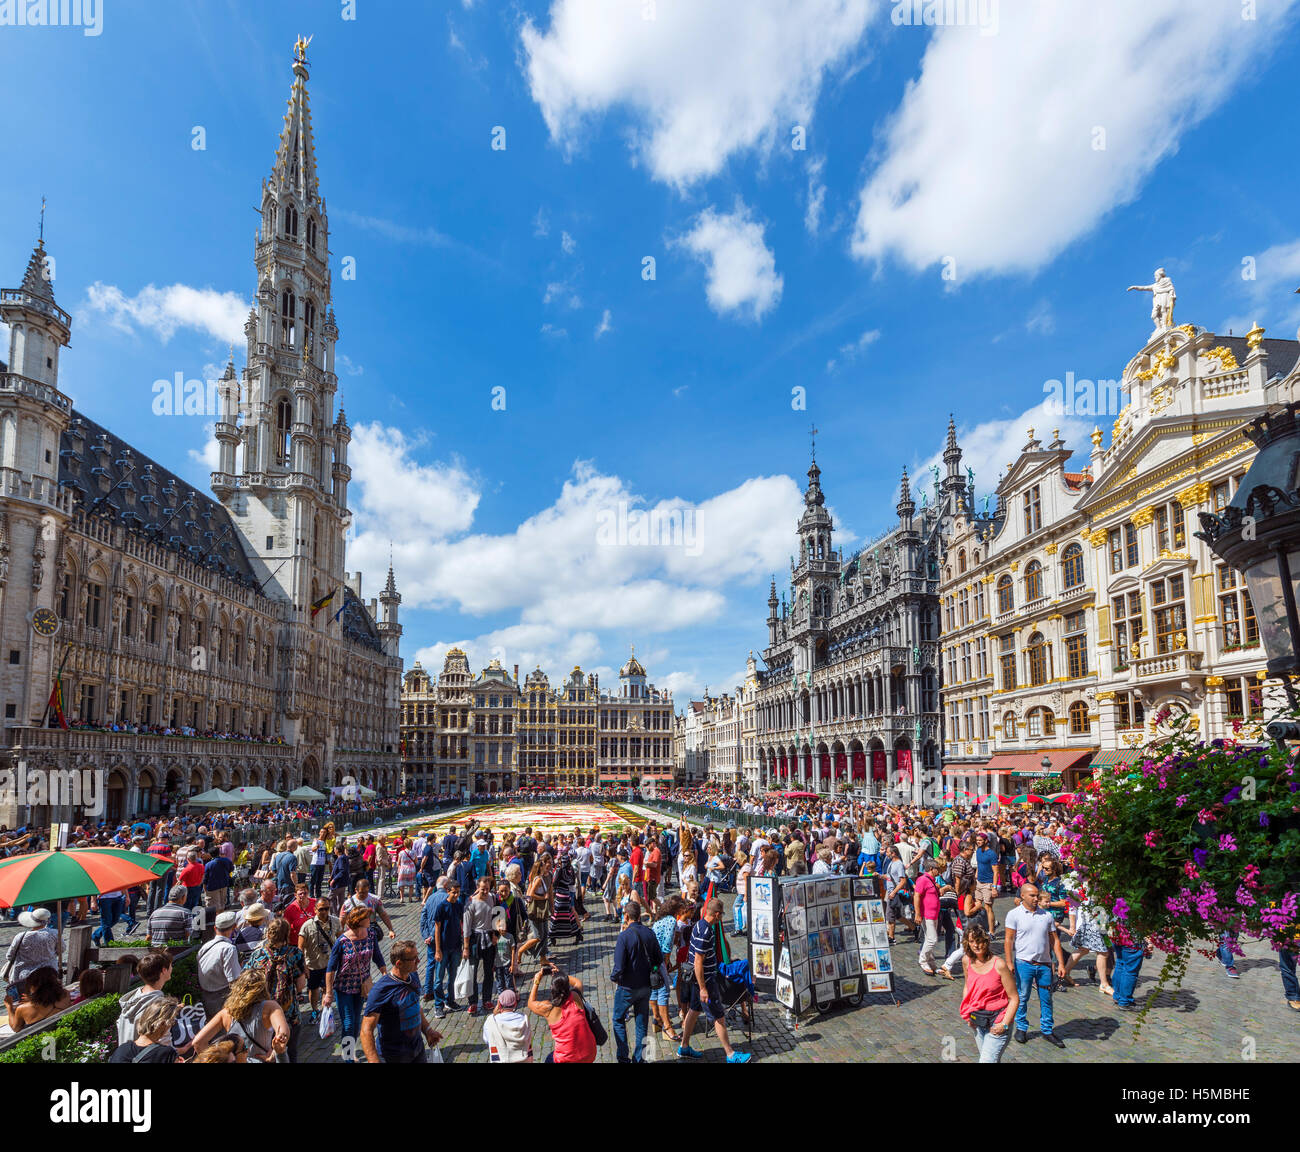 The 2016 Carpet of Flowers in the Grand Place (Grote Markt) with the Town Hall to the left, Brussels, Belgium. Stock Photo